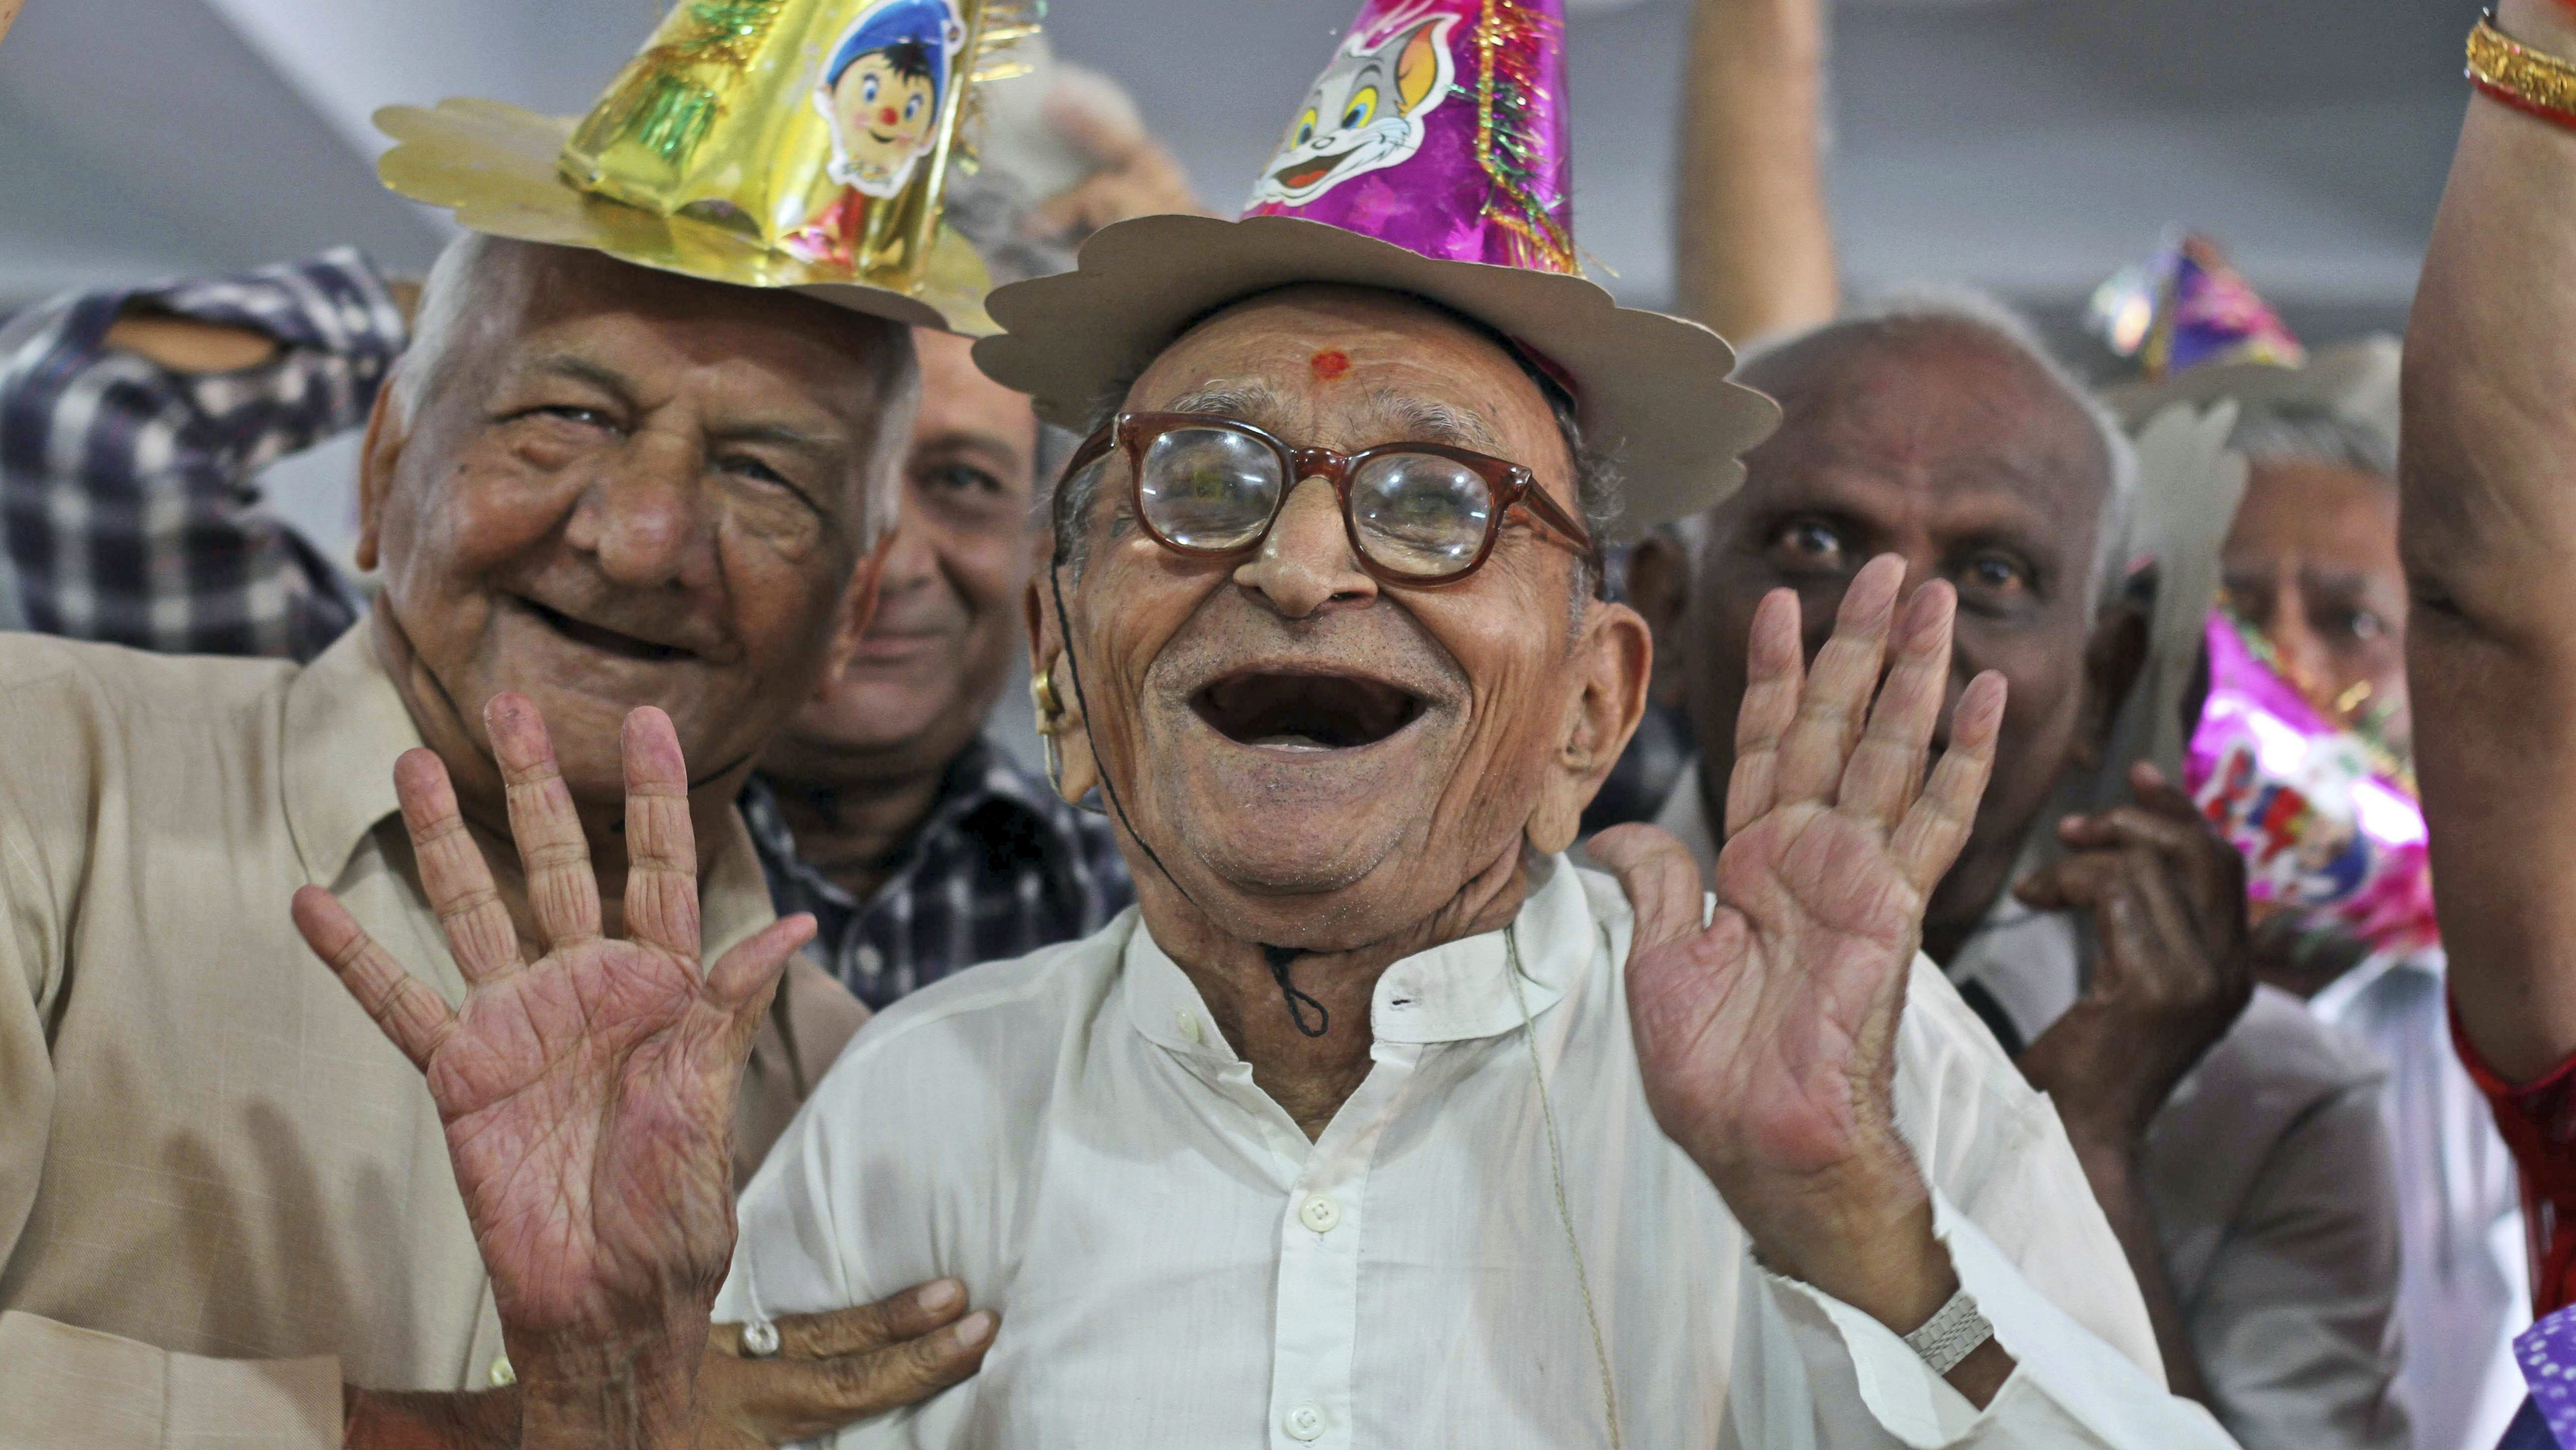 An elderly gentleman and his friends smile while wearing party hats at a celebration